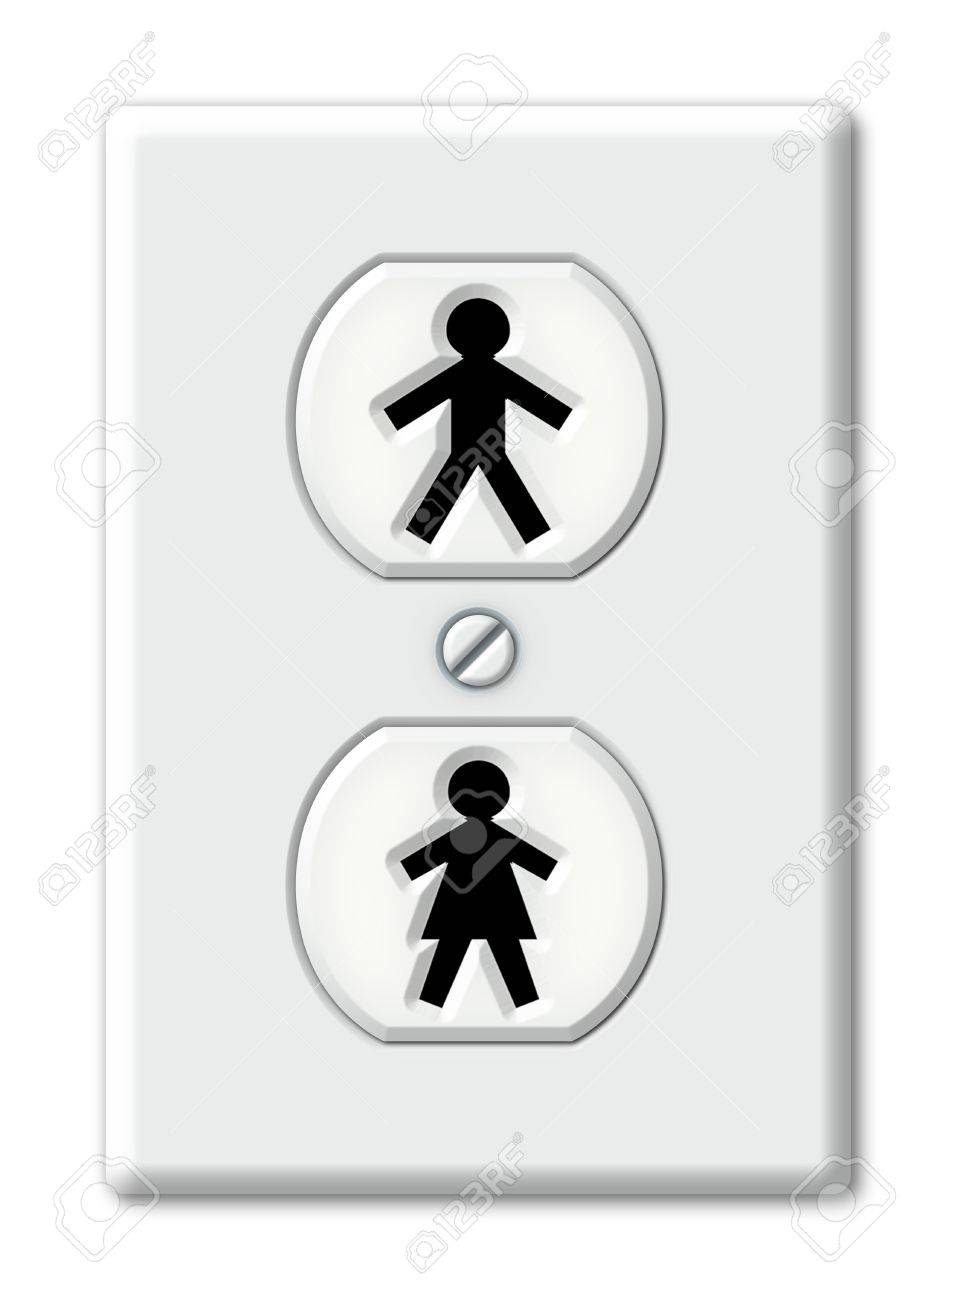 Illustration Of An Electrical Outlet With Symbols For Male And